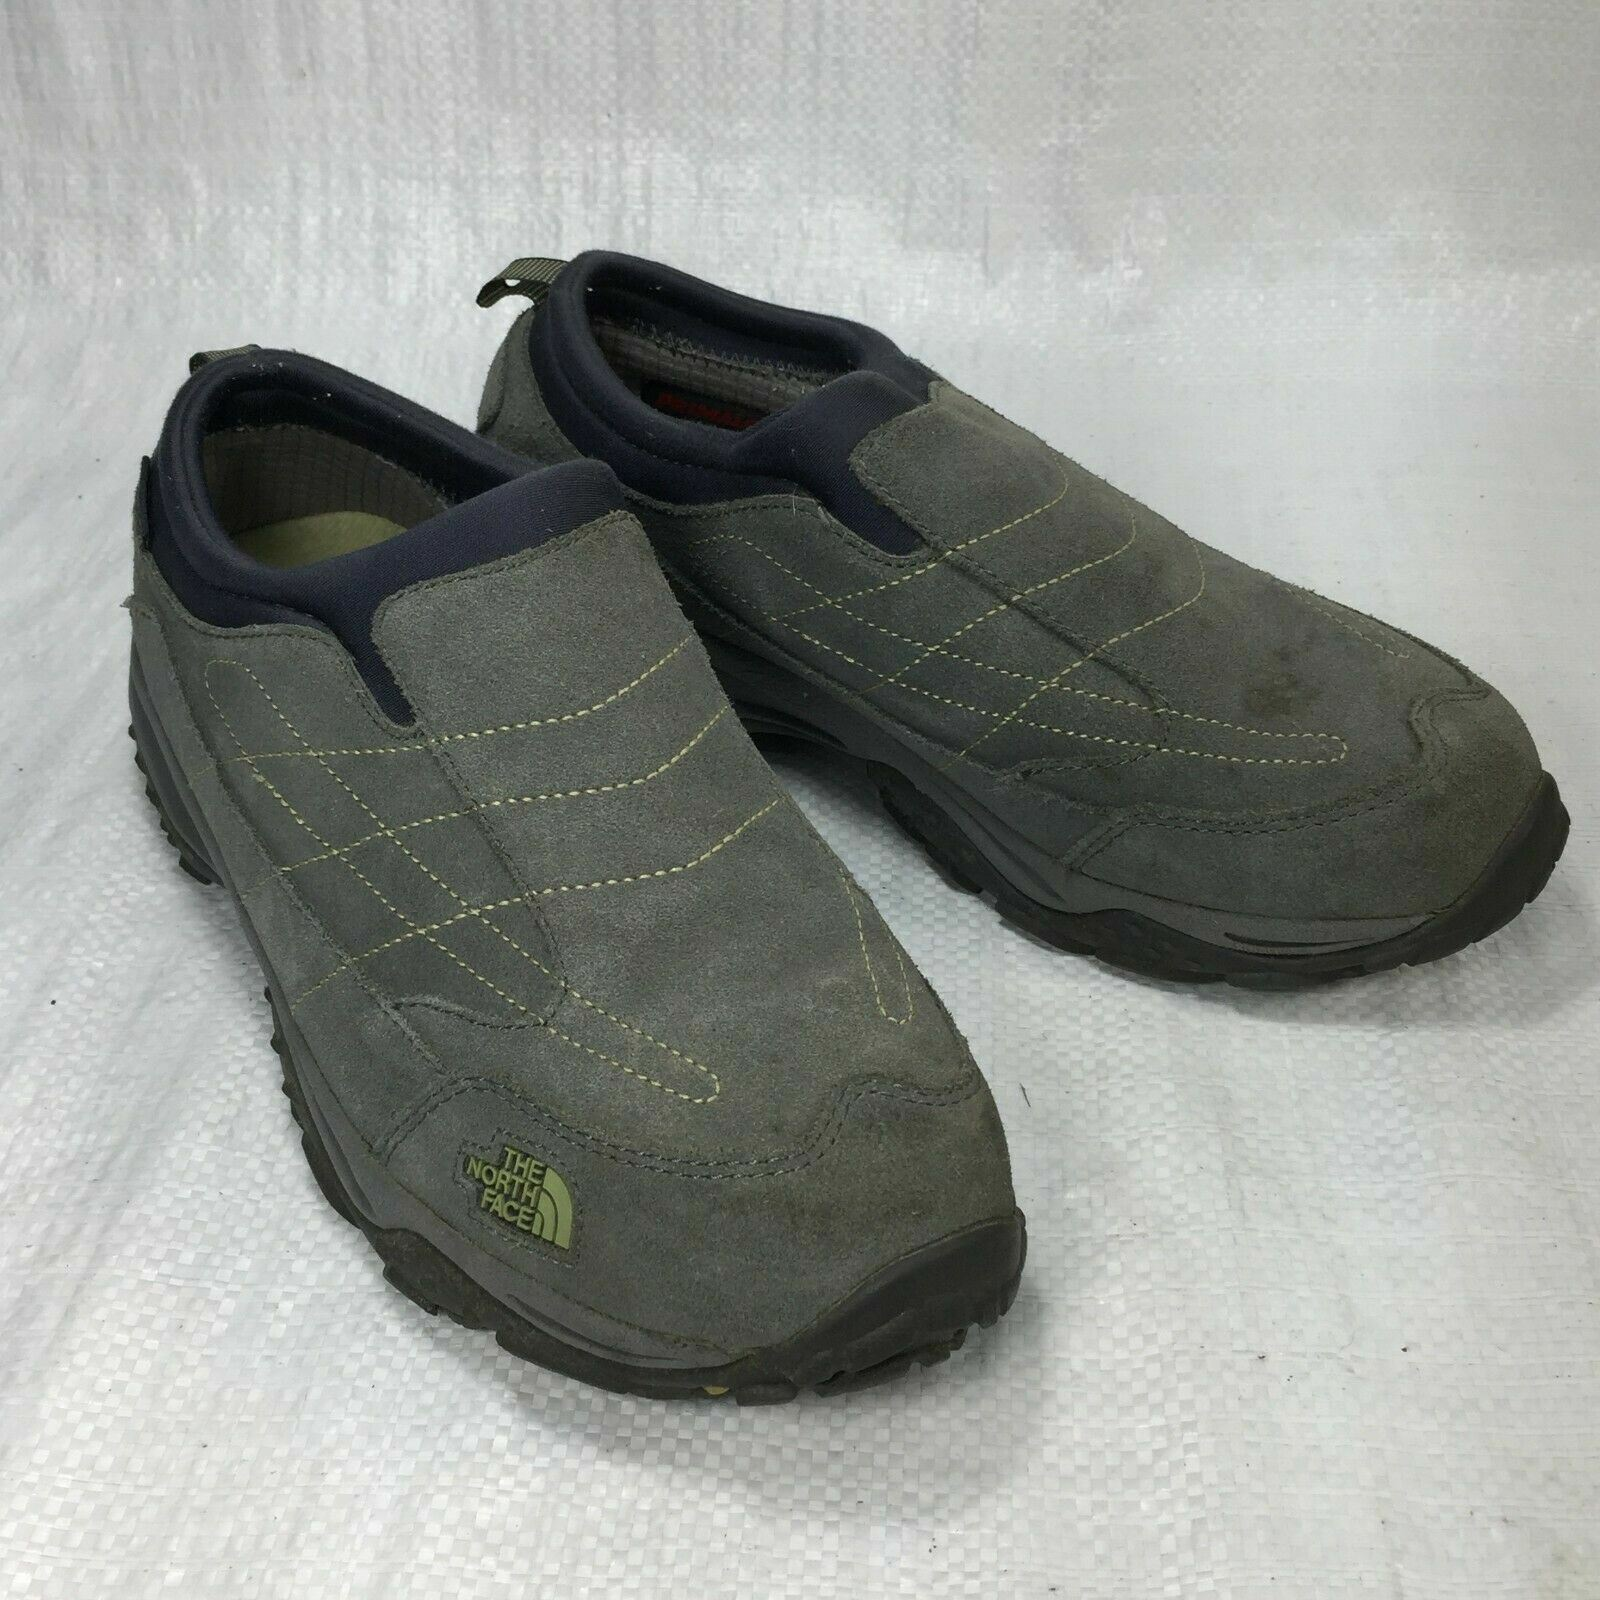 The North Face Primaloft 200G Grey Suede Slip On Womens Hiking Loafers Sz 9.5